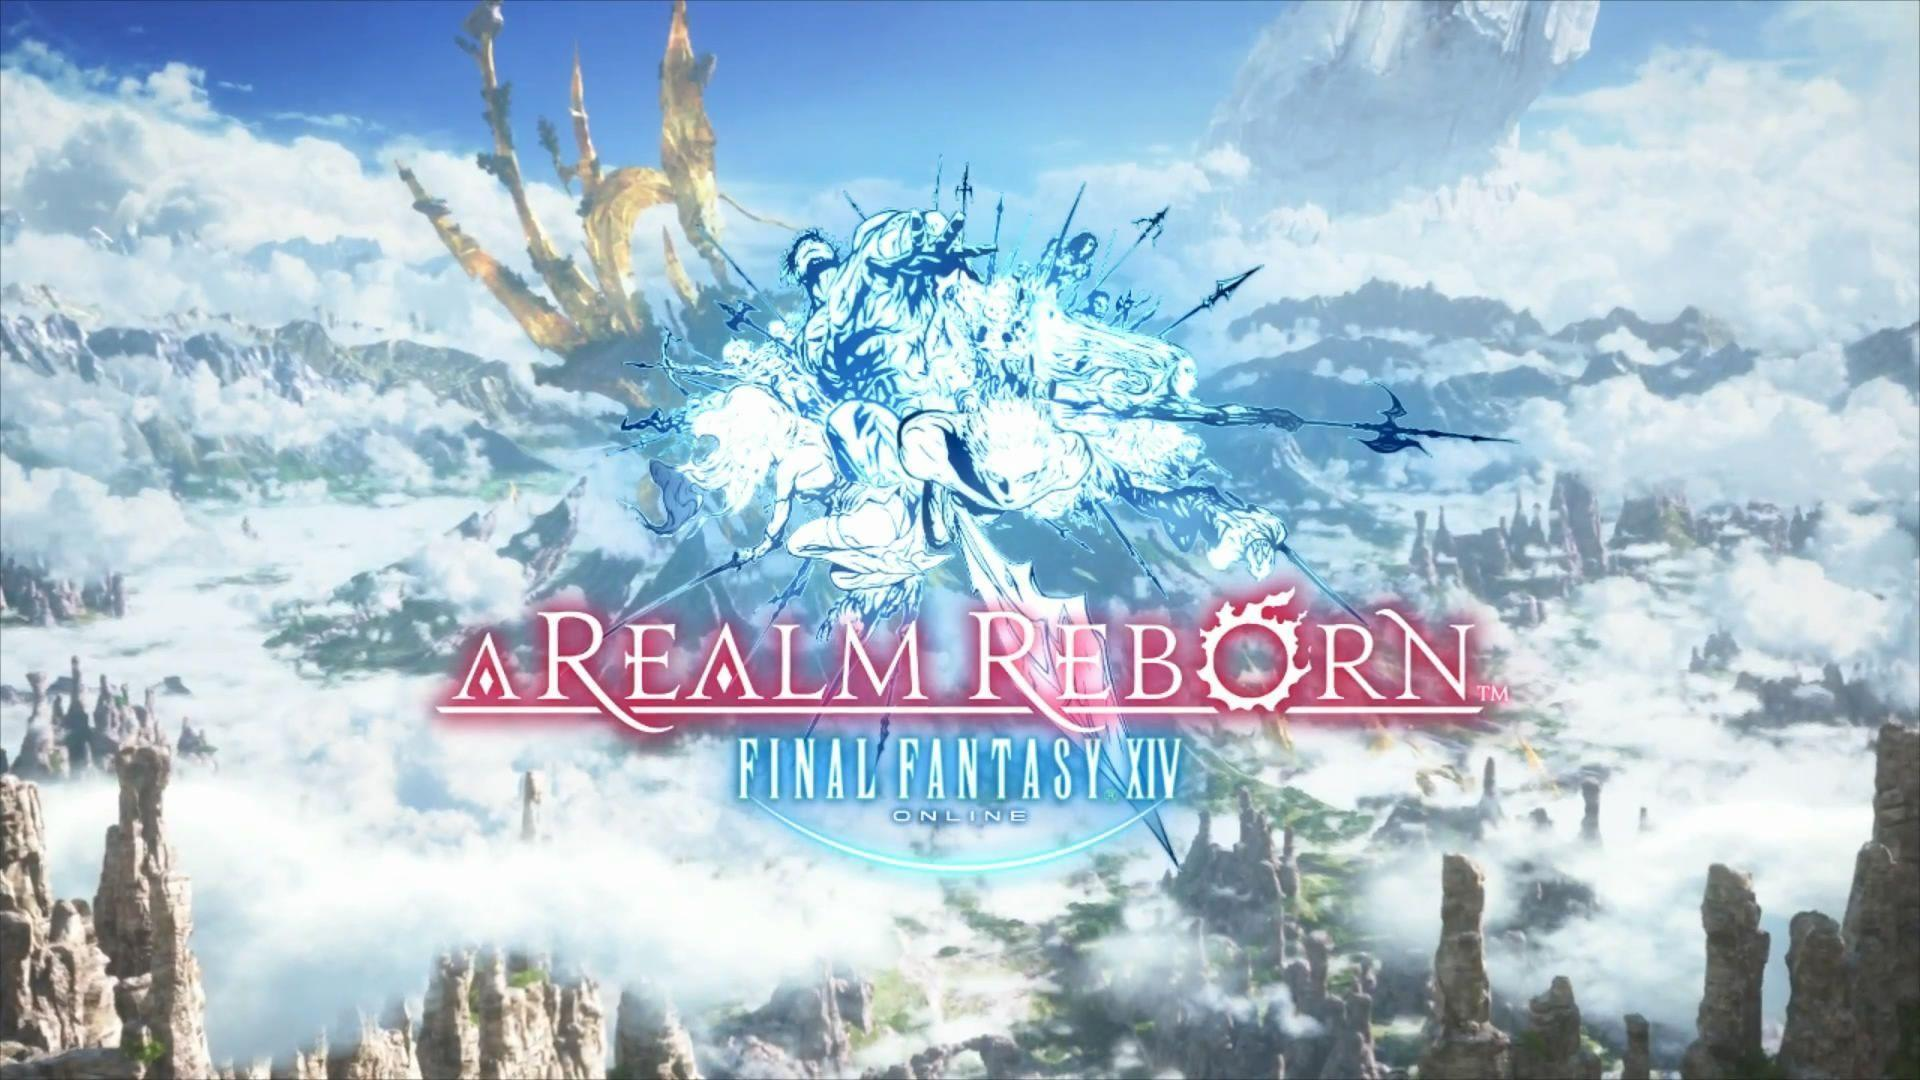 Final Fantasy Xiv A Realm Reborn wallpapers